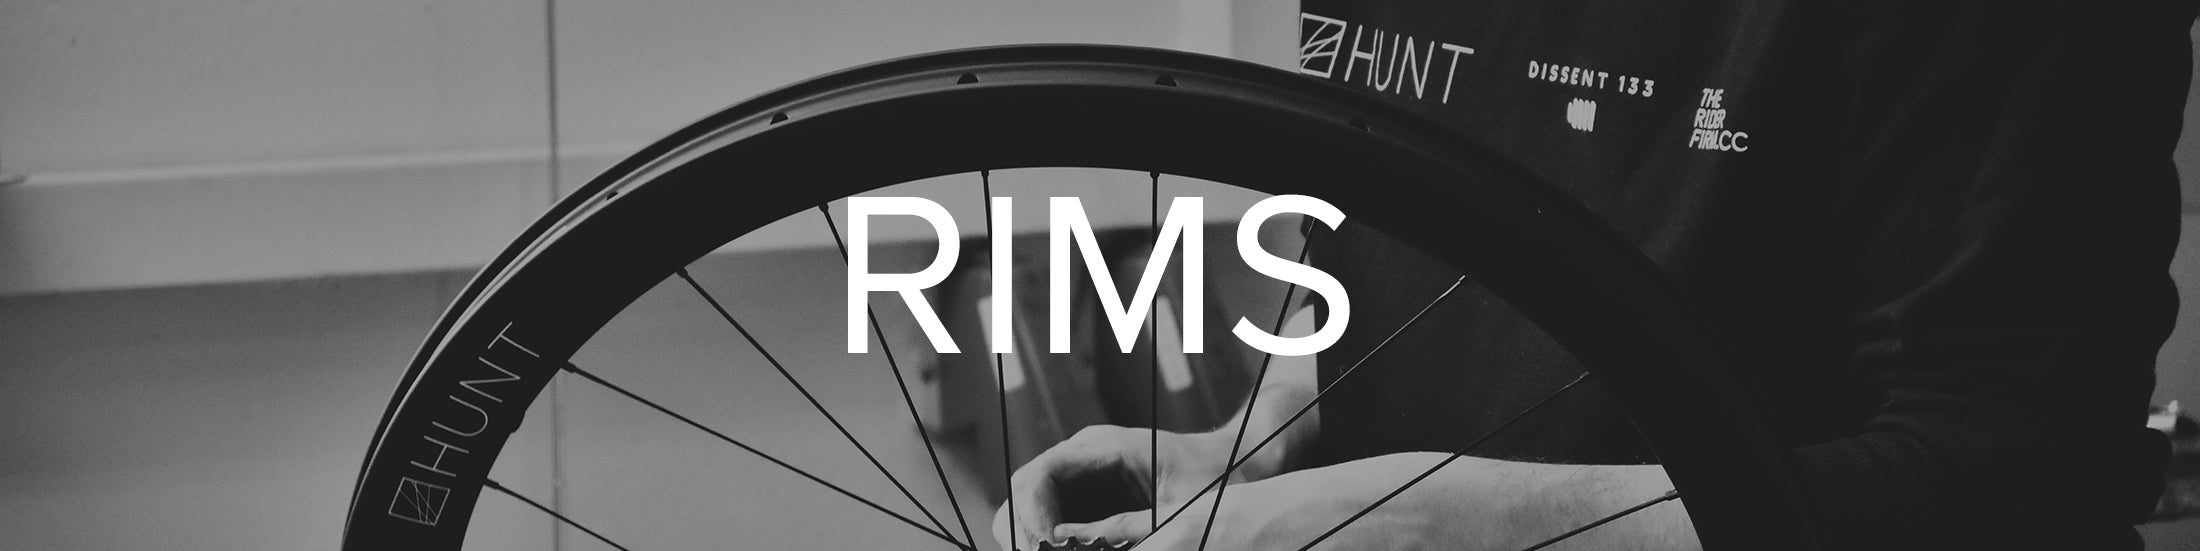 rims-collection